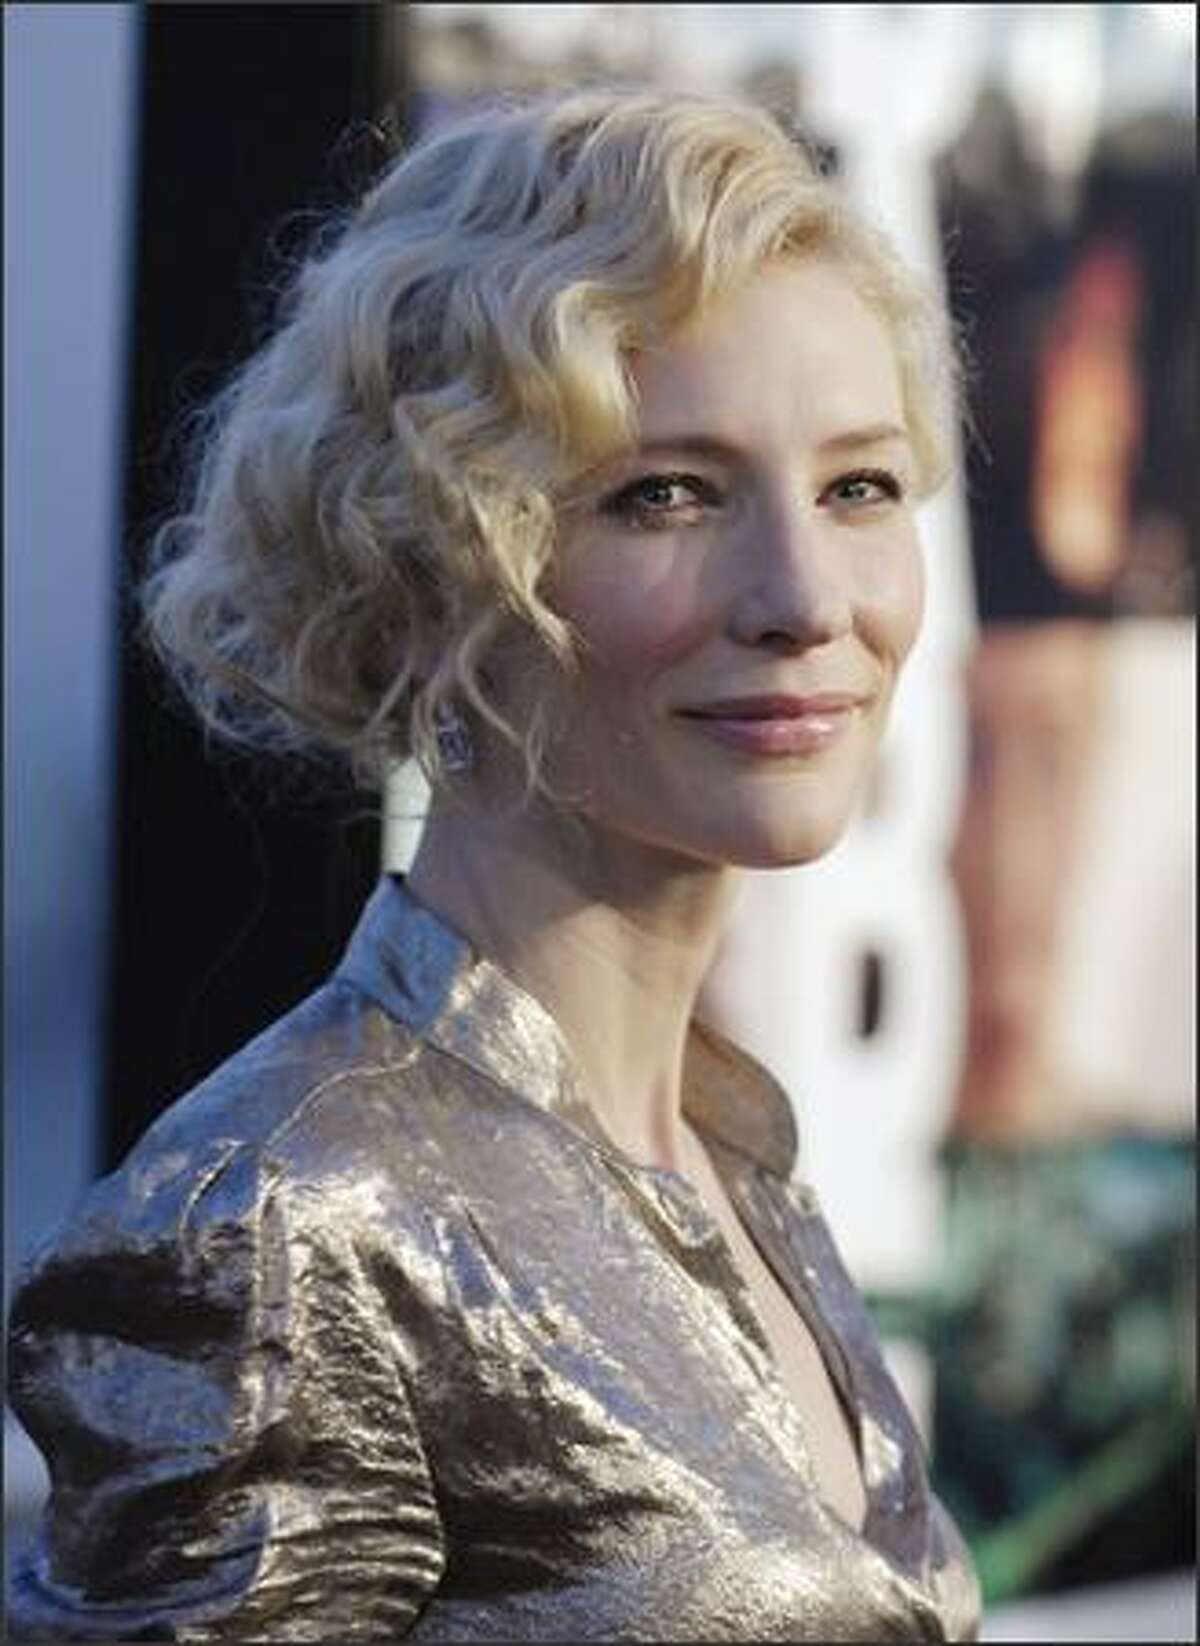 Cate Blanchett, a cast member in the film